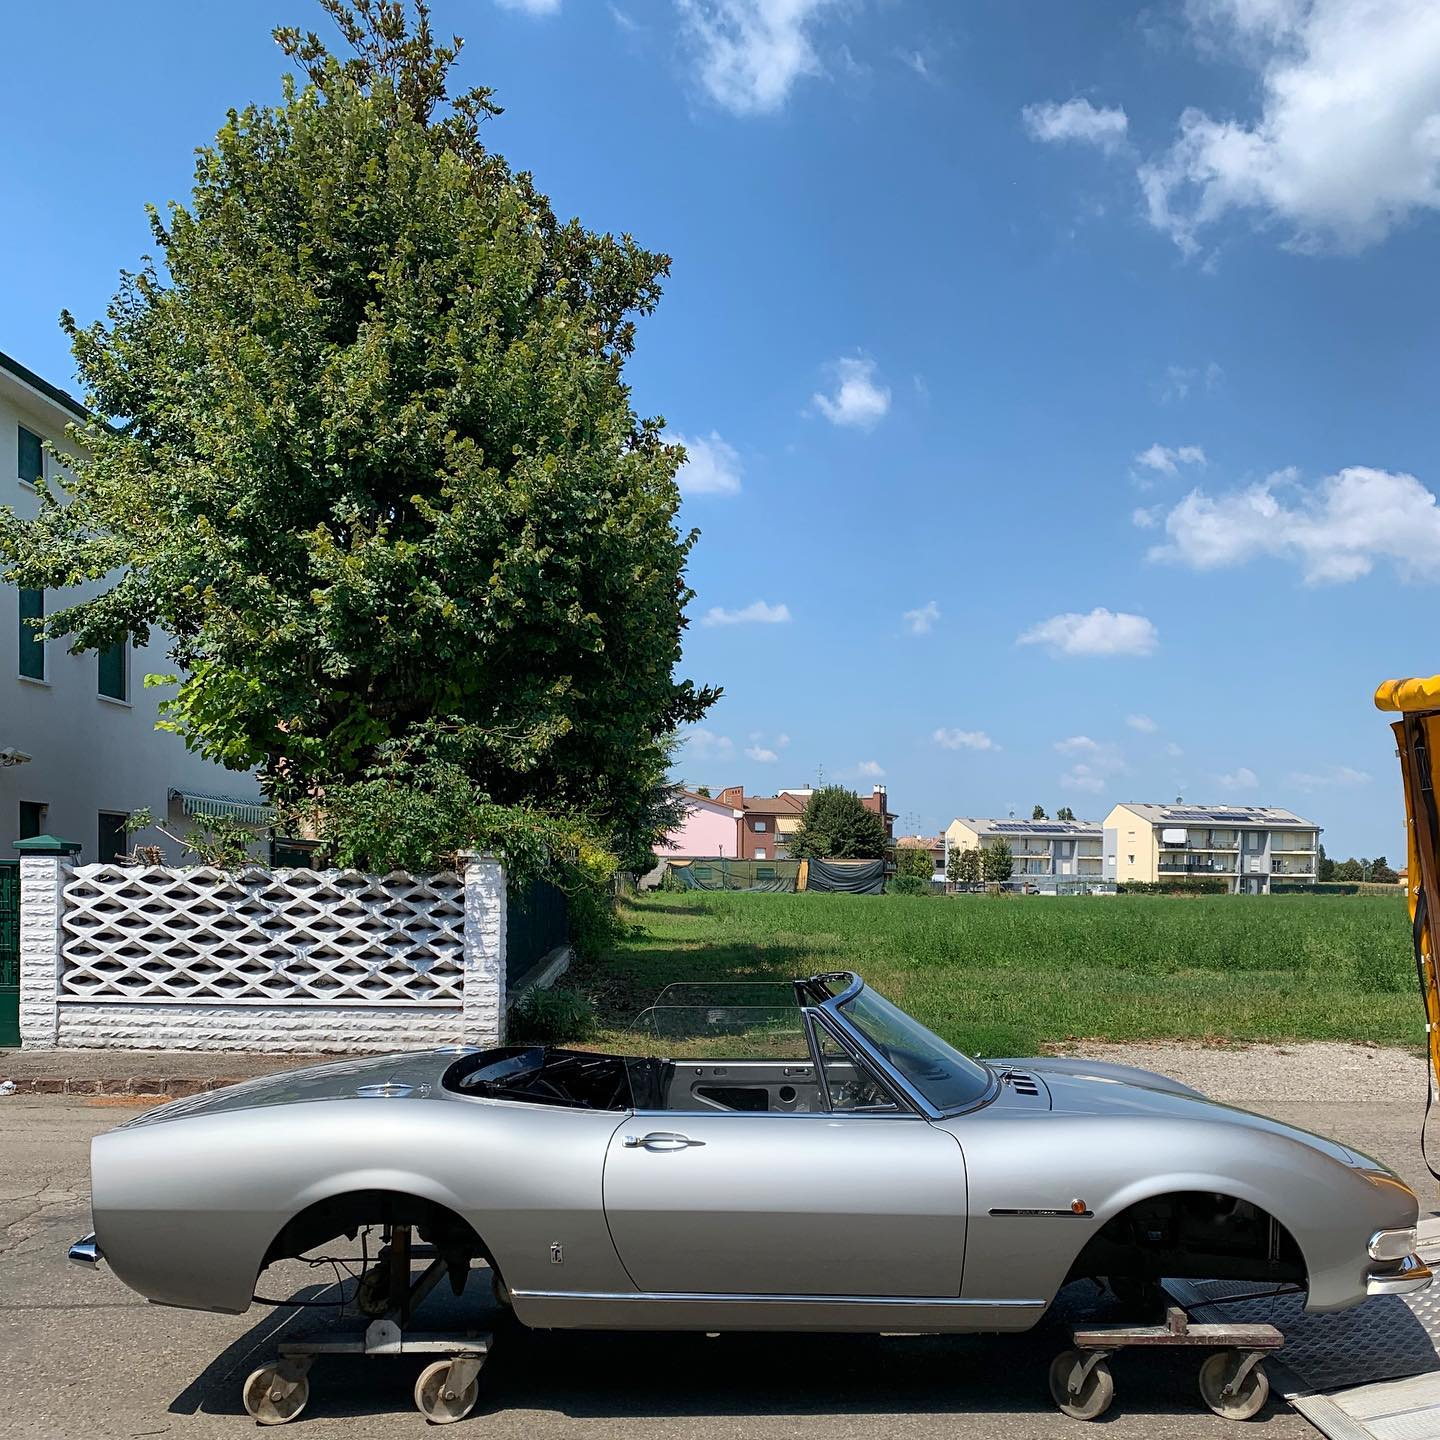 I like the shape of the Fiat Dino and the Grigio Indianapolis emphasizes the clean and curvy lines of Pininfarina design. Another Italian beauty ready for the trim shop and soon back on the road! – – – #pininfarina #italianstyle #fiatdino #fiatdinospider #sixtystyle #cremoniniclassic #ilovemyjob